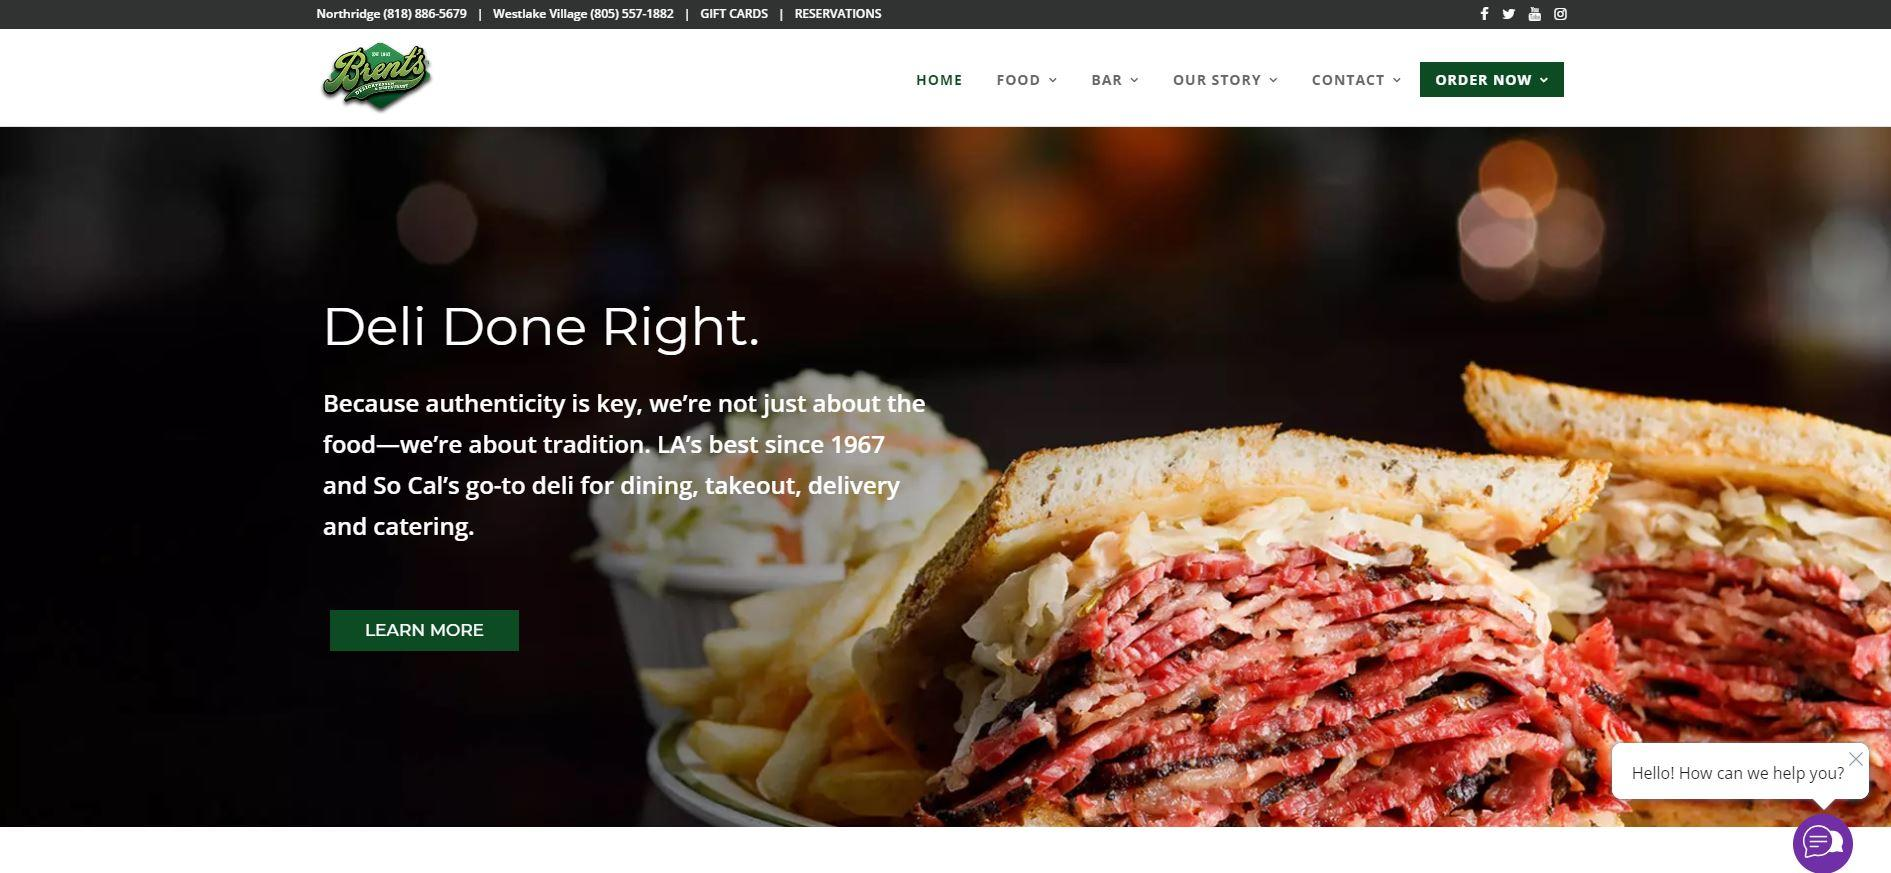 Brent's Deli of Northridge CA and Westlake Village CA Contracts GoMarketing of Thousand Oaks CA to Create a New Website and Internet Marketing for Their Restaurants